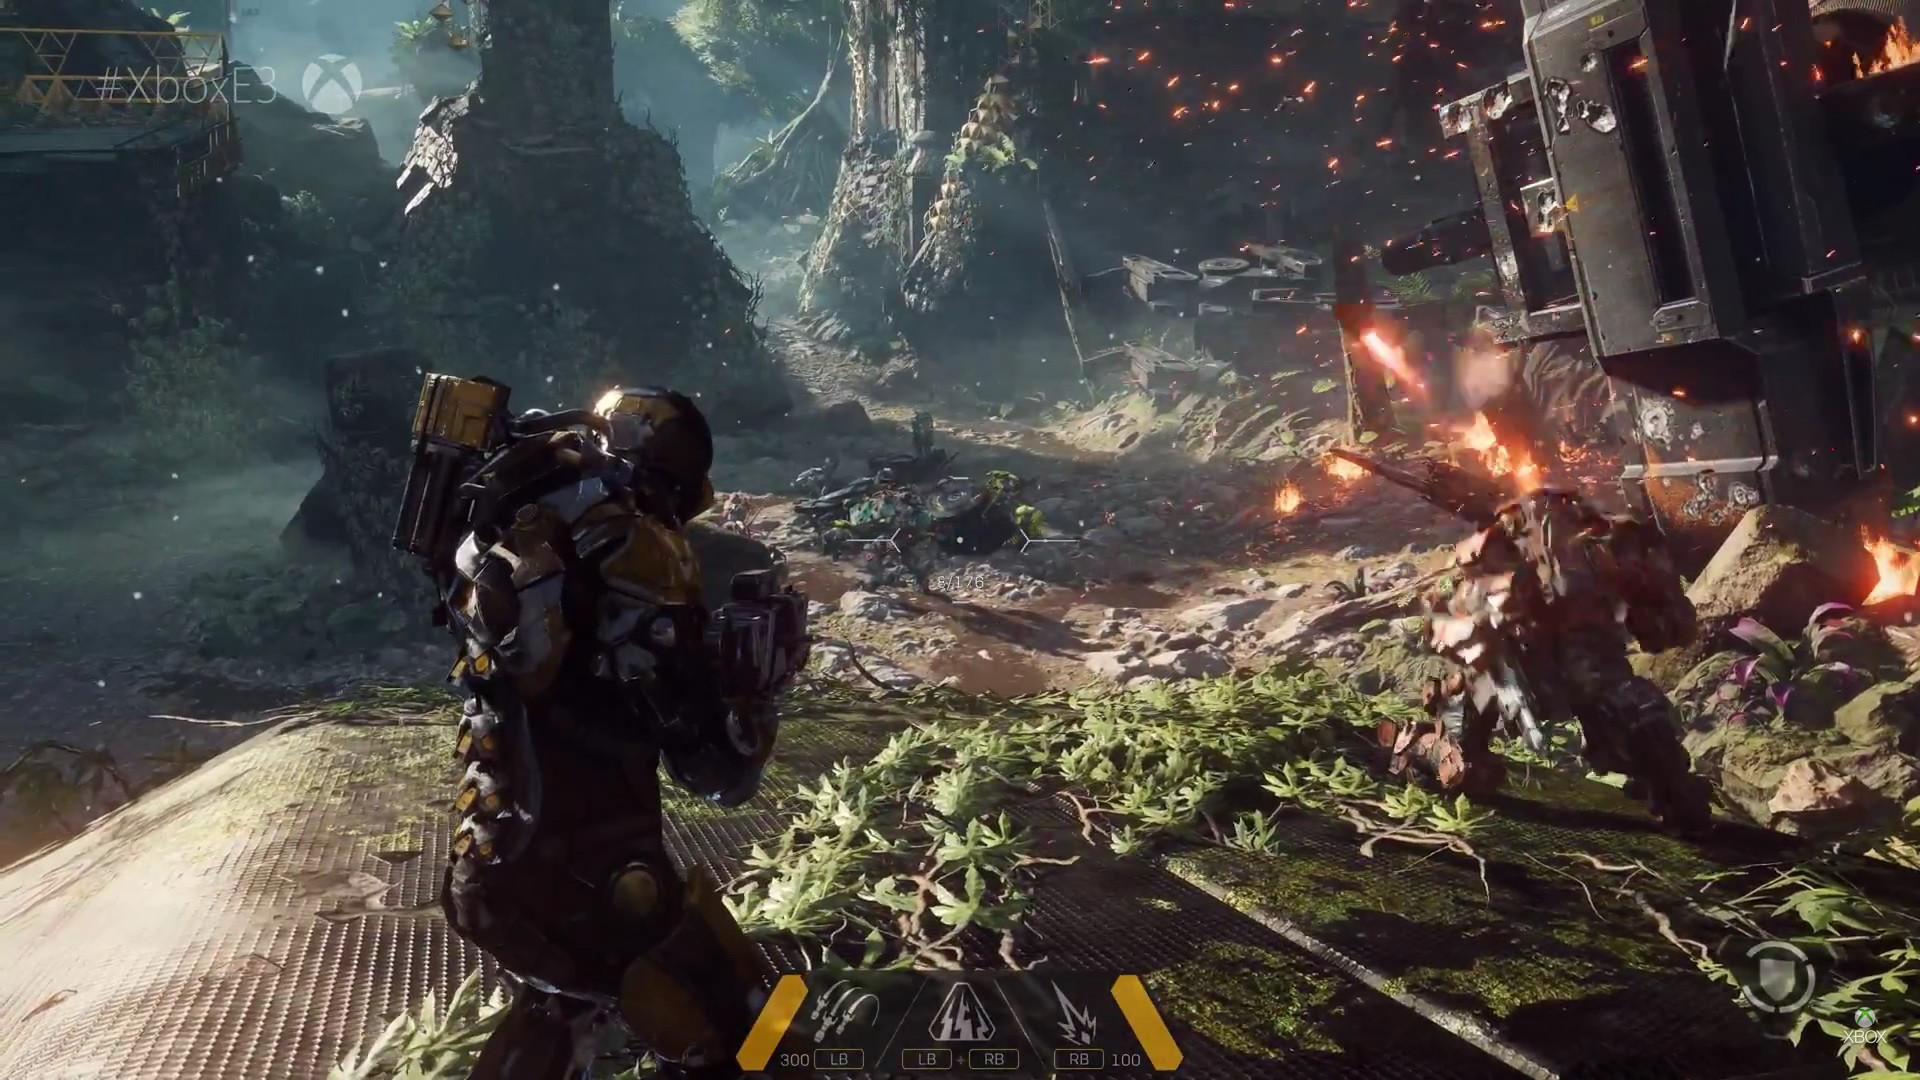 An Anthem for SLI: Bioware's New Universe in 60 FPS 4K Run